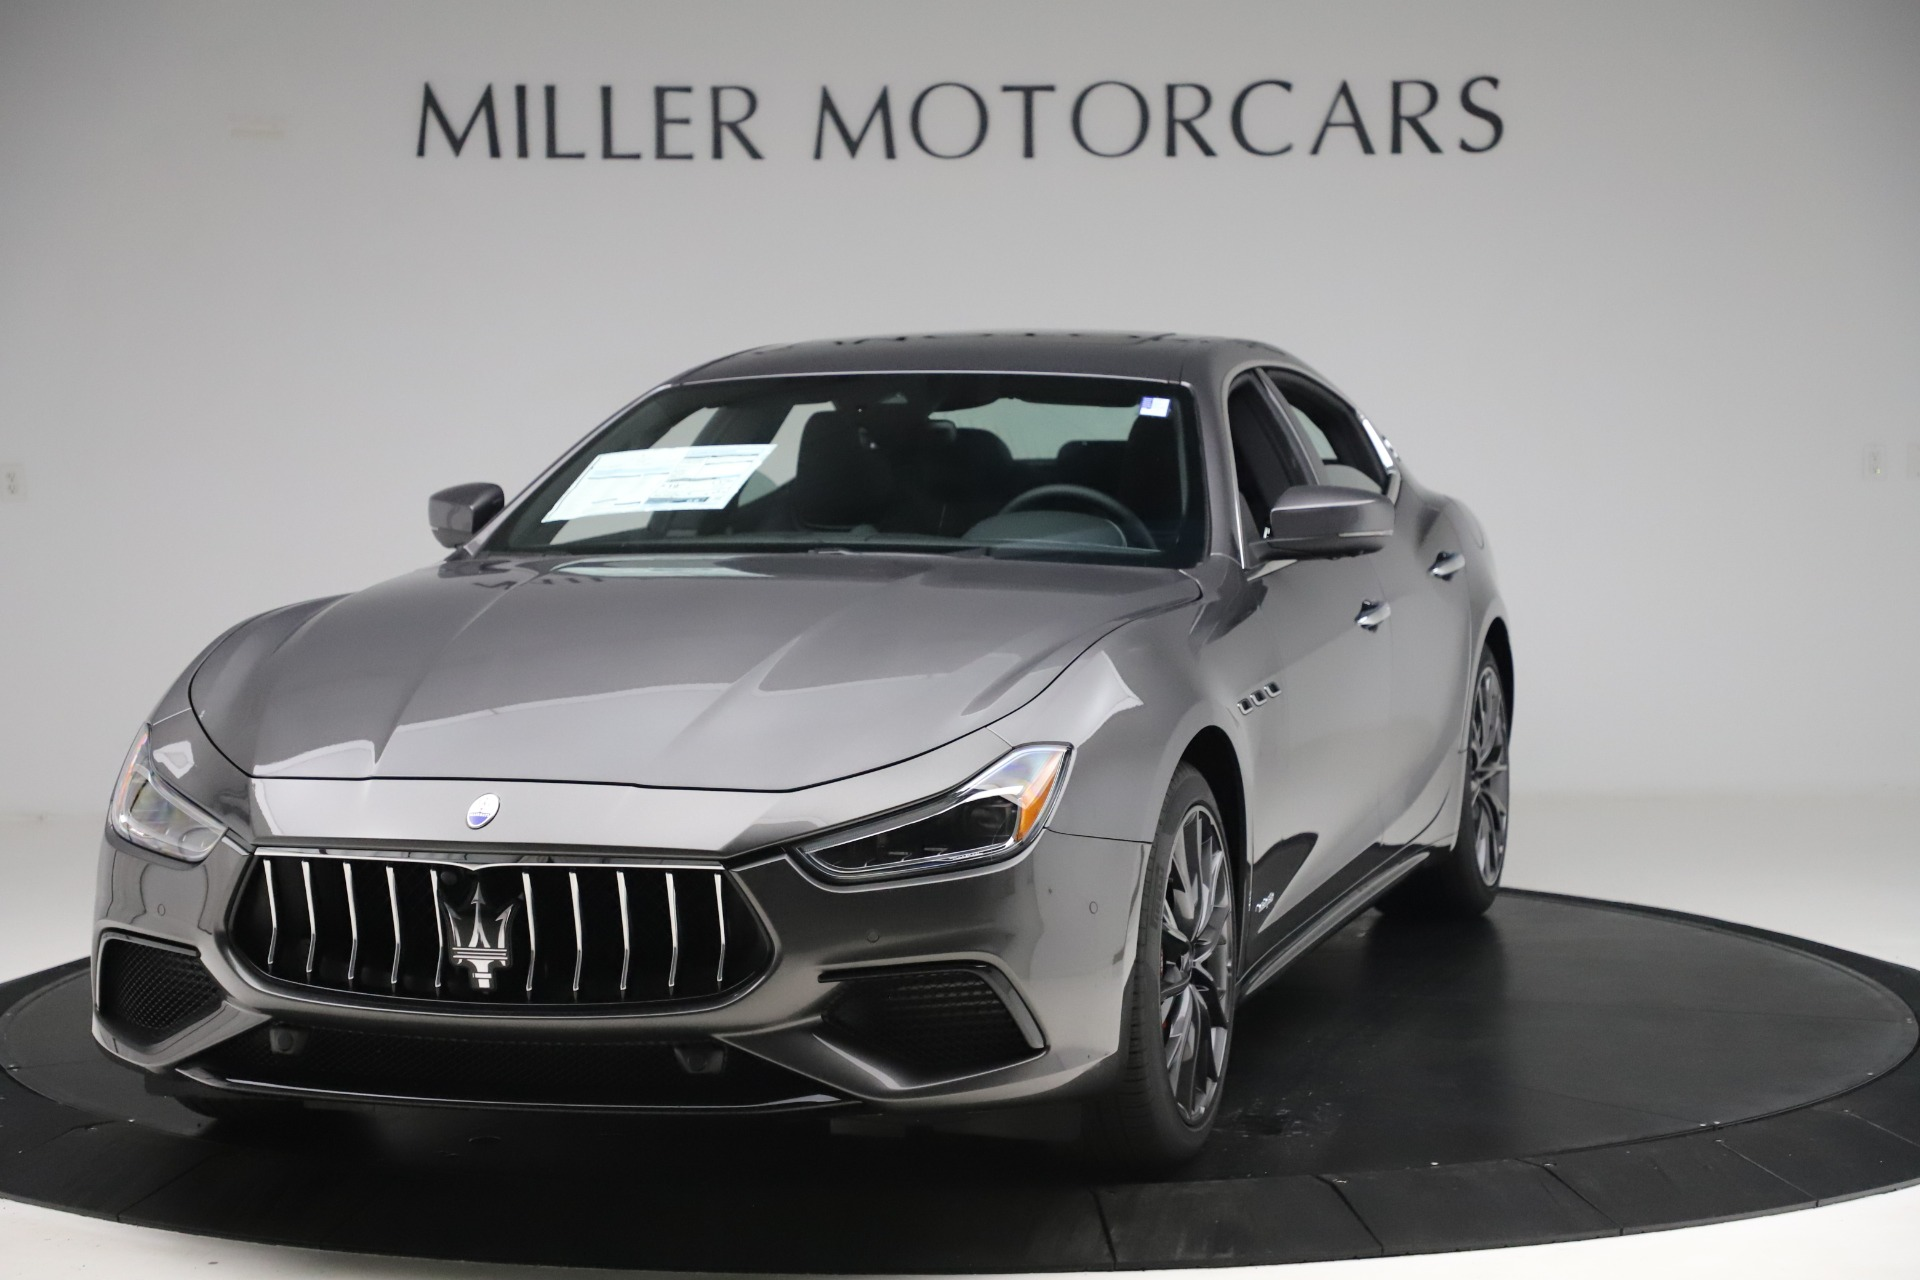 New 2019 Maserati Ghibli S Q4 GranSport for sale $100,695 at Bentley Greenwich in Greenwich CT 06830 1